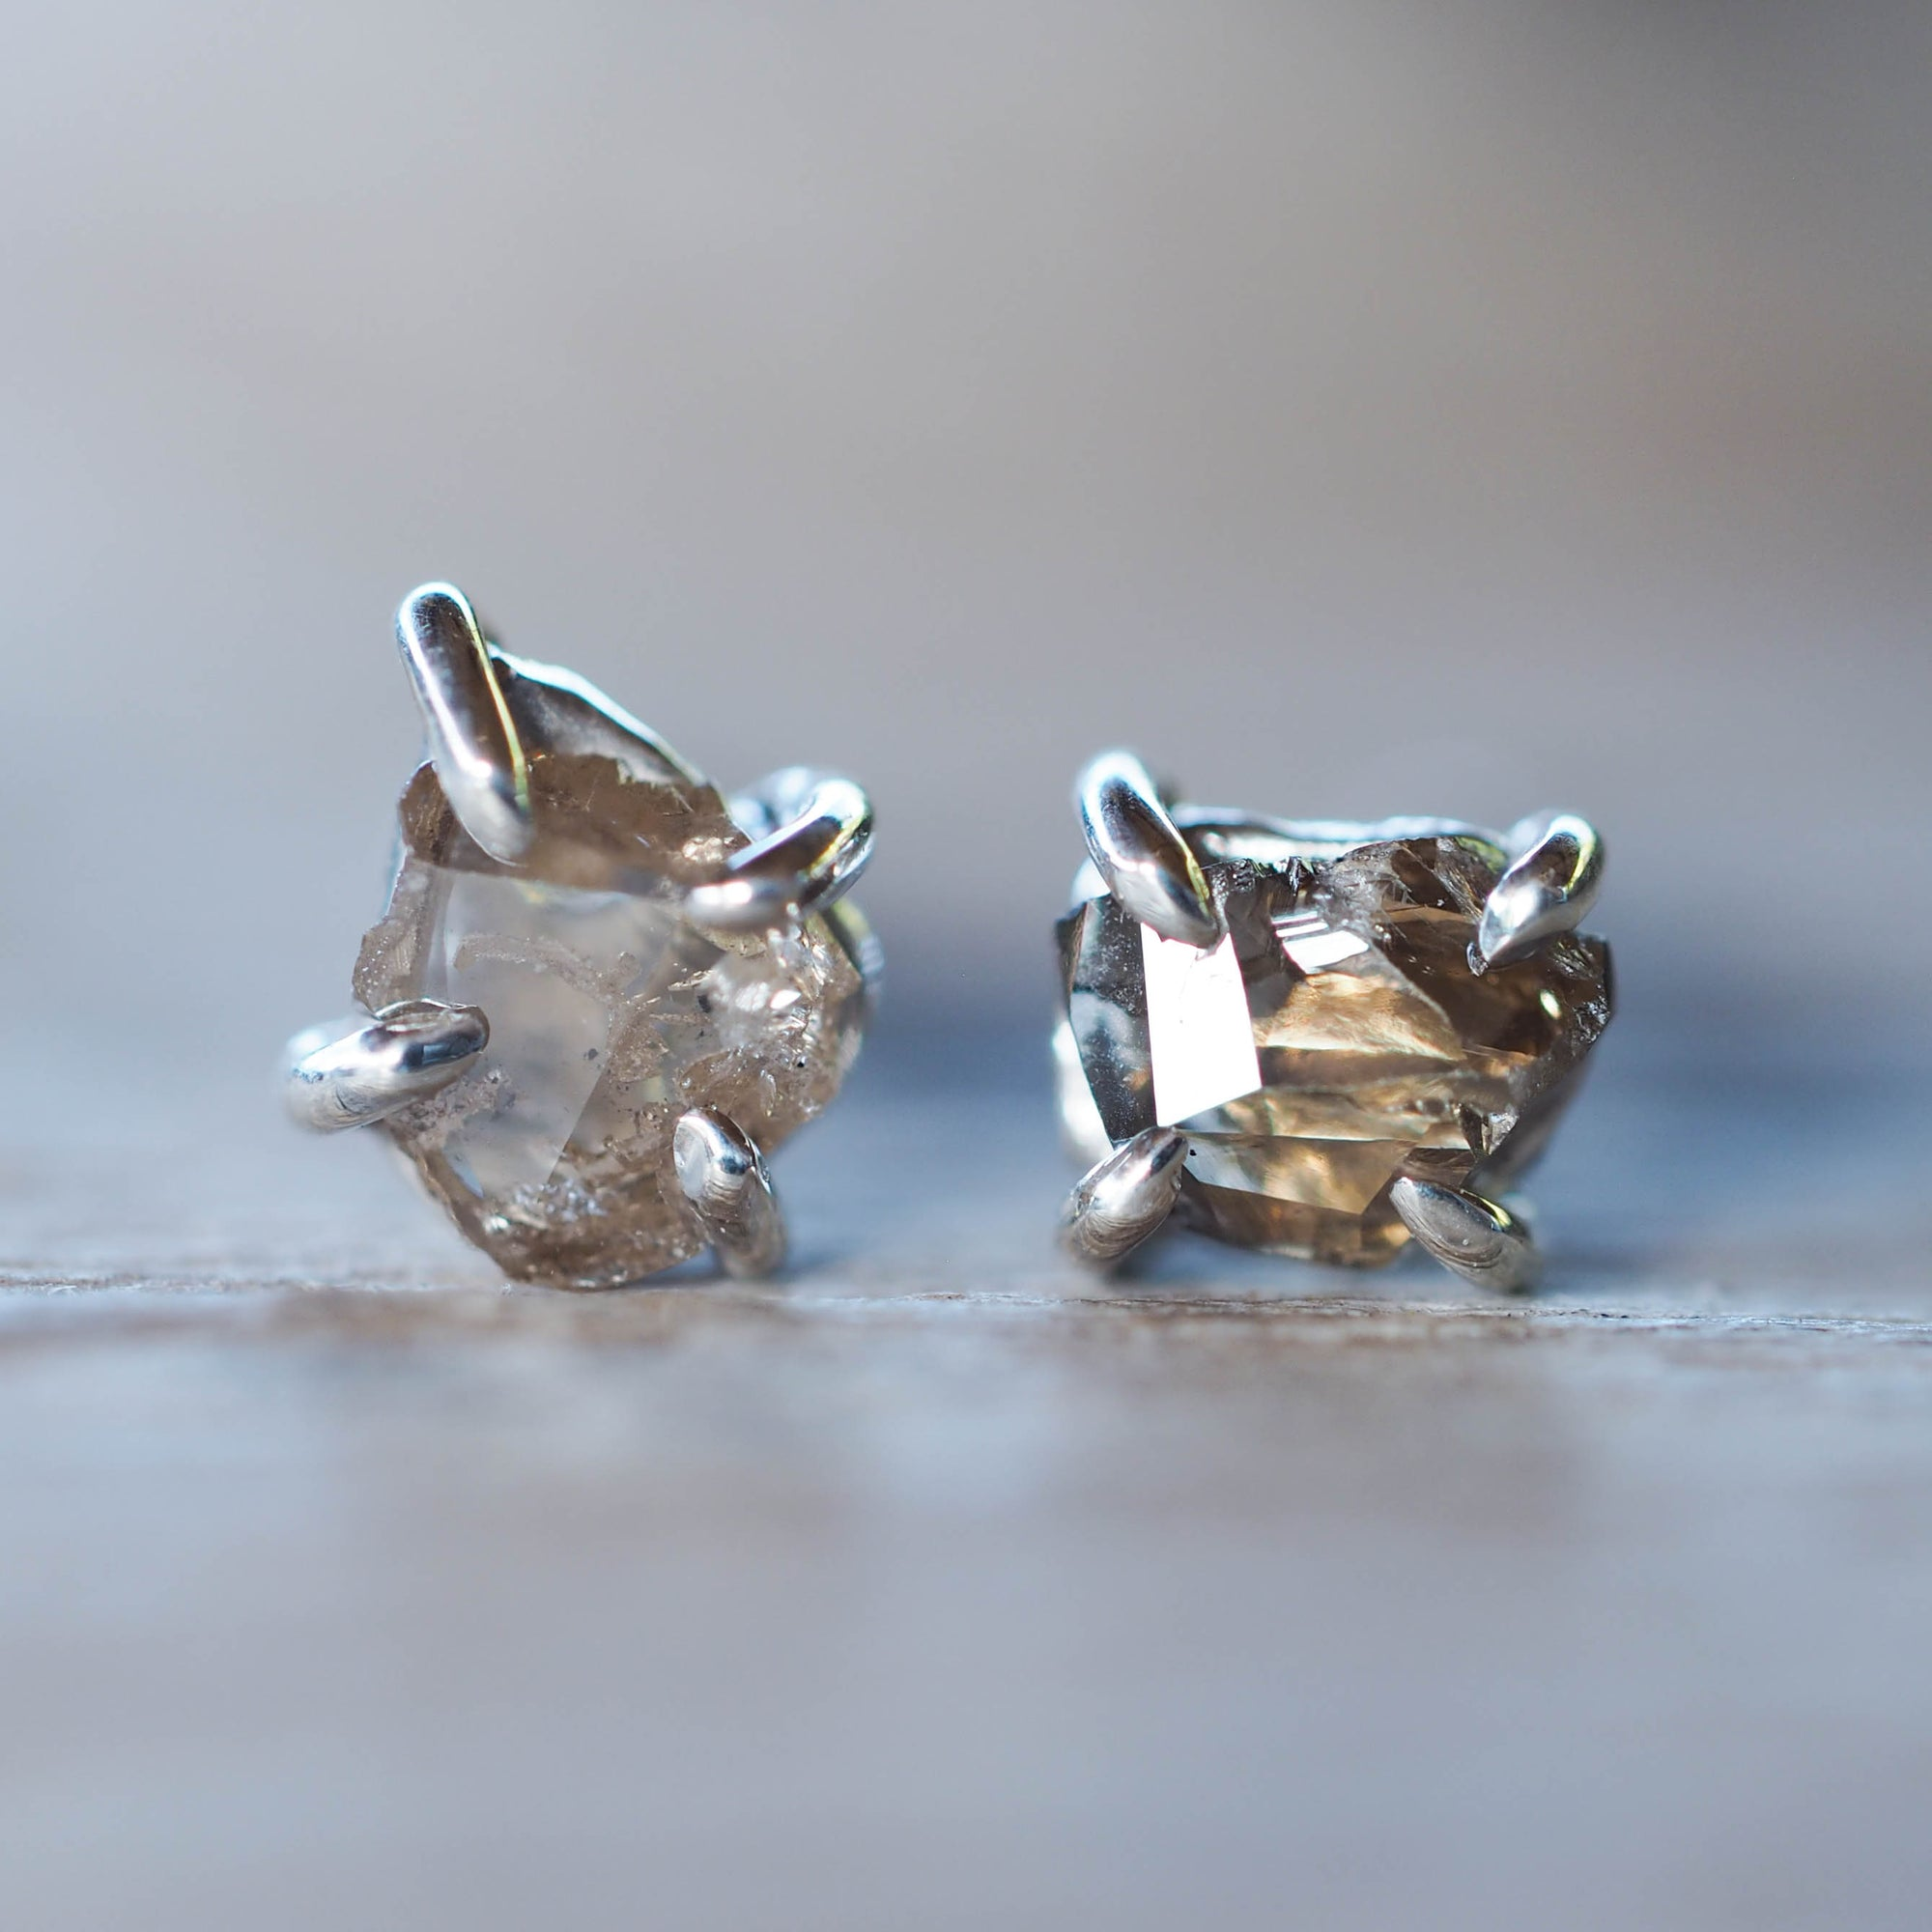 Borneo Diamond Earrings